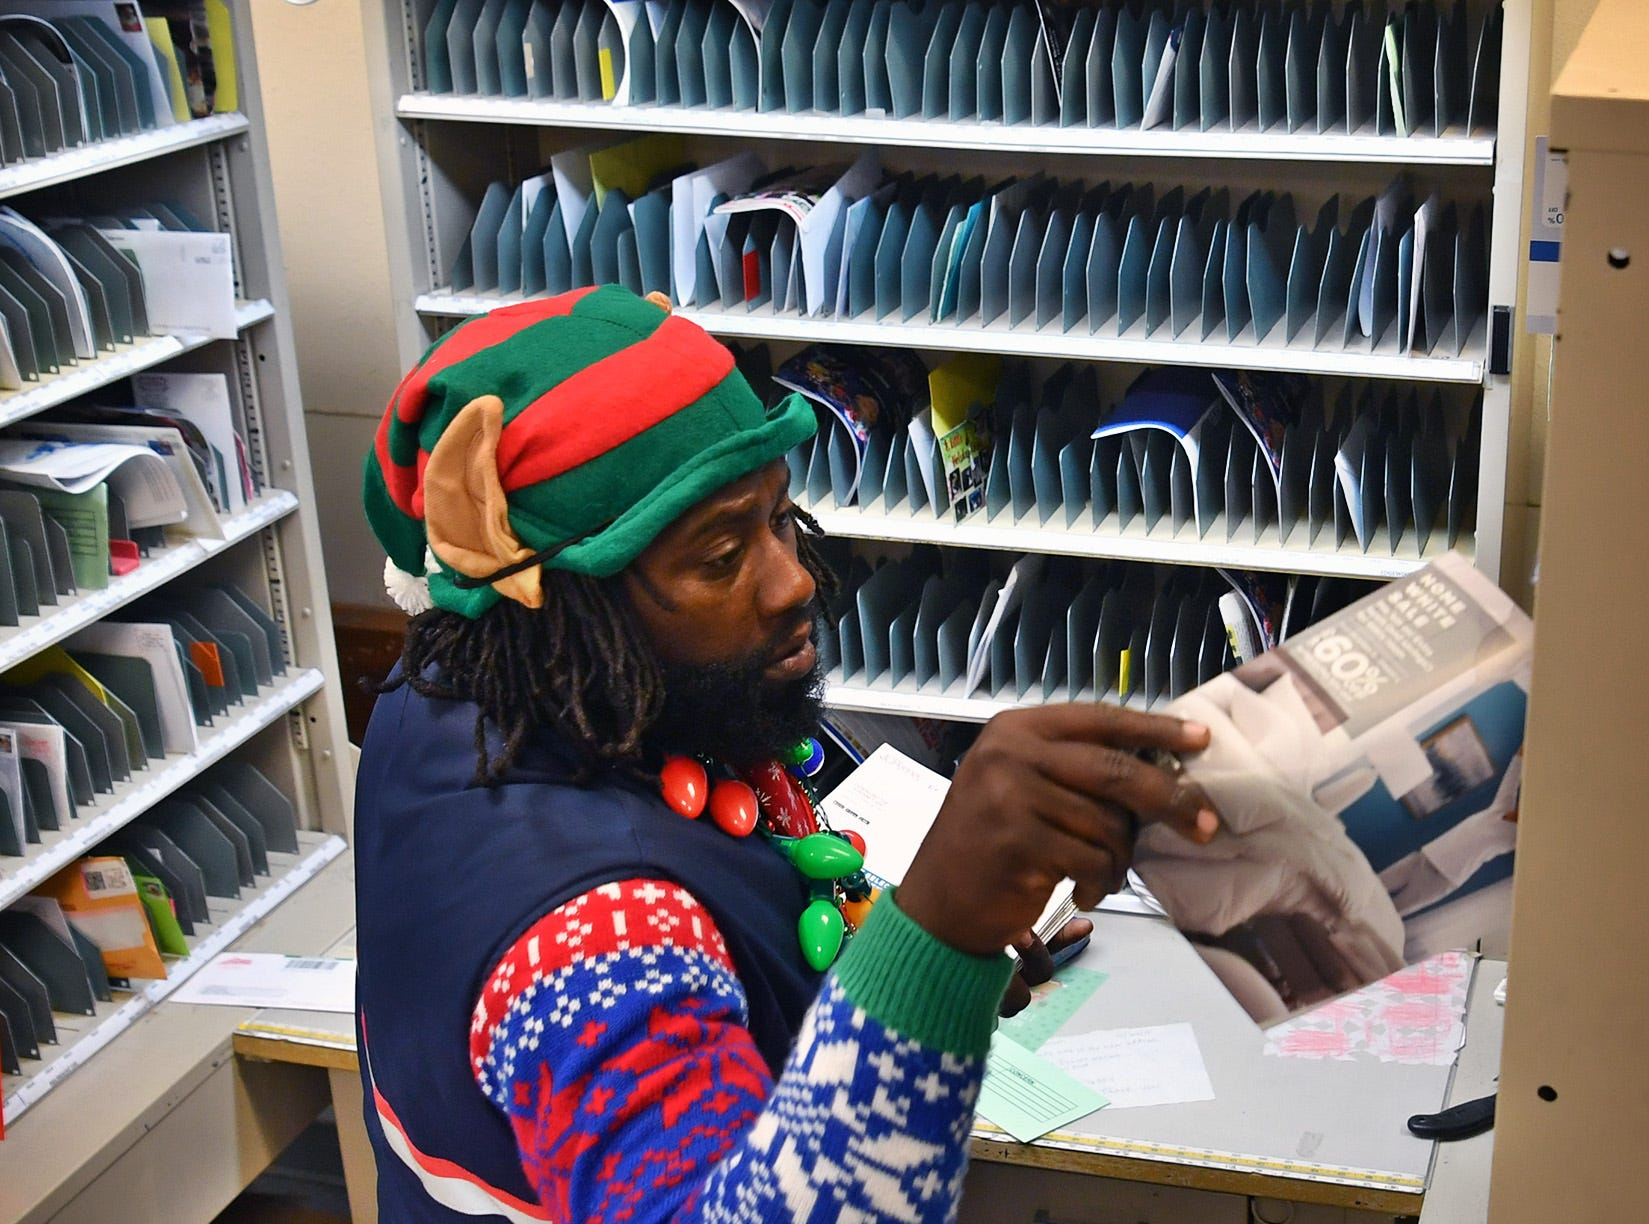 Postal carrier Joe Forbins sorts mail Friday morning. Around Christmas, Forbins spreads cheer along the way with a elf hat, Christmas sweater and candy for those on his route of more than 600 addresses.